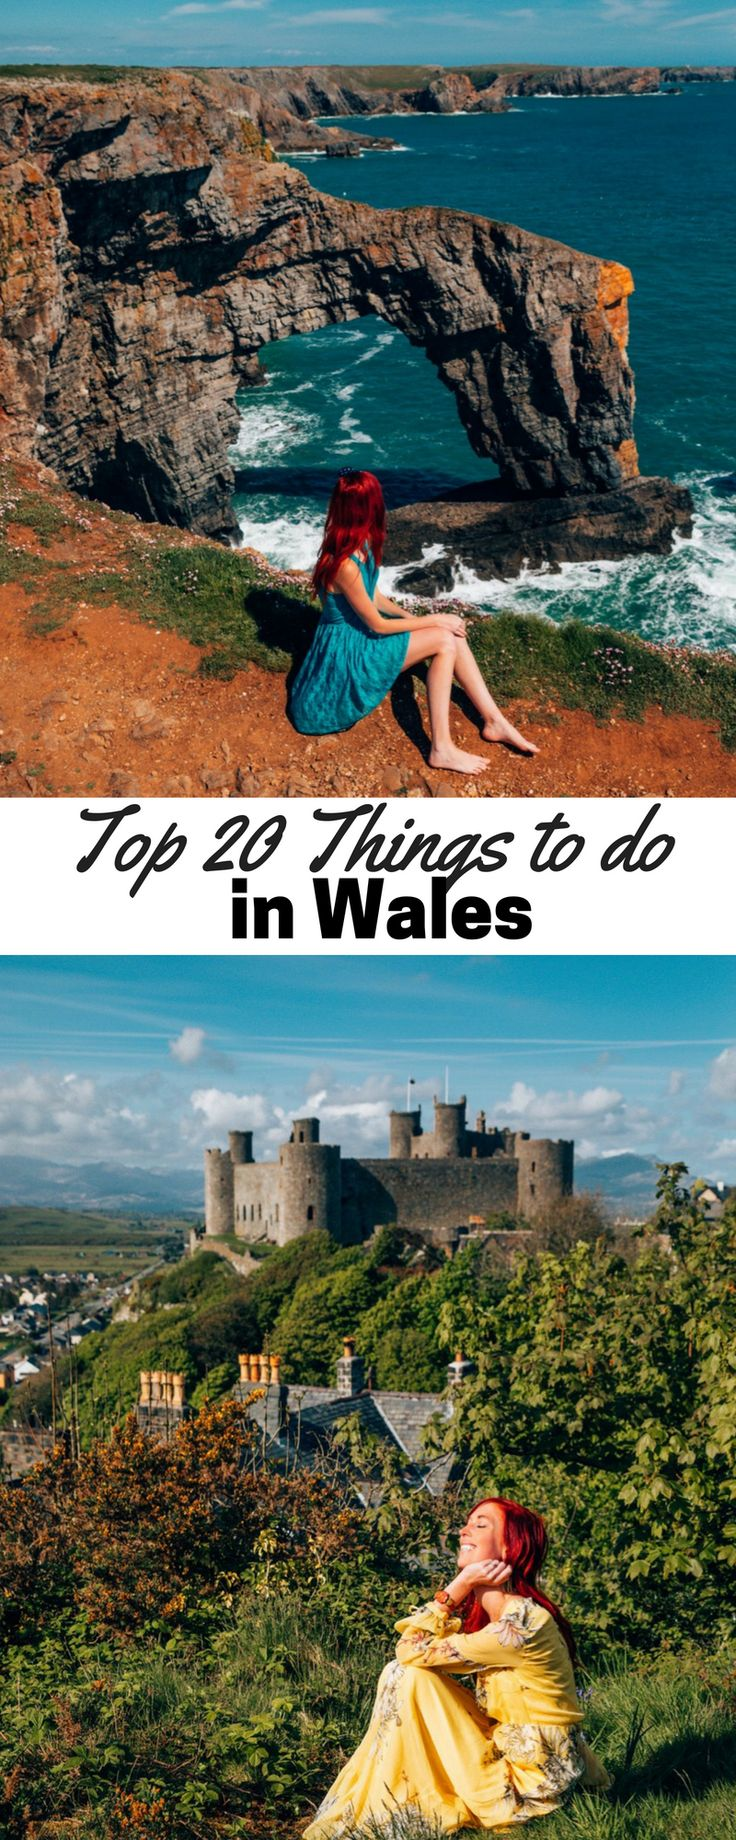 Top 20 Things to do in Wales